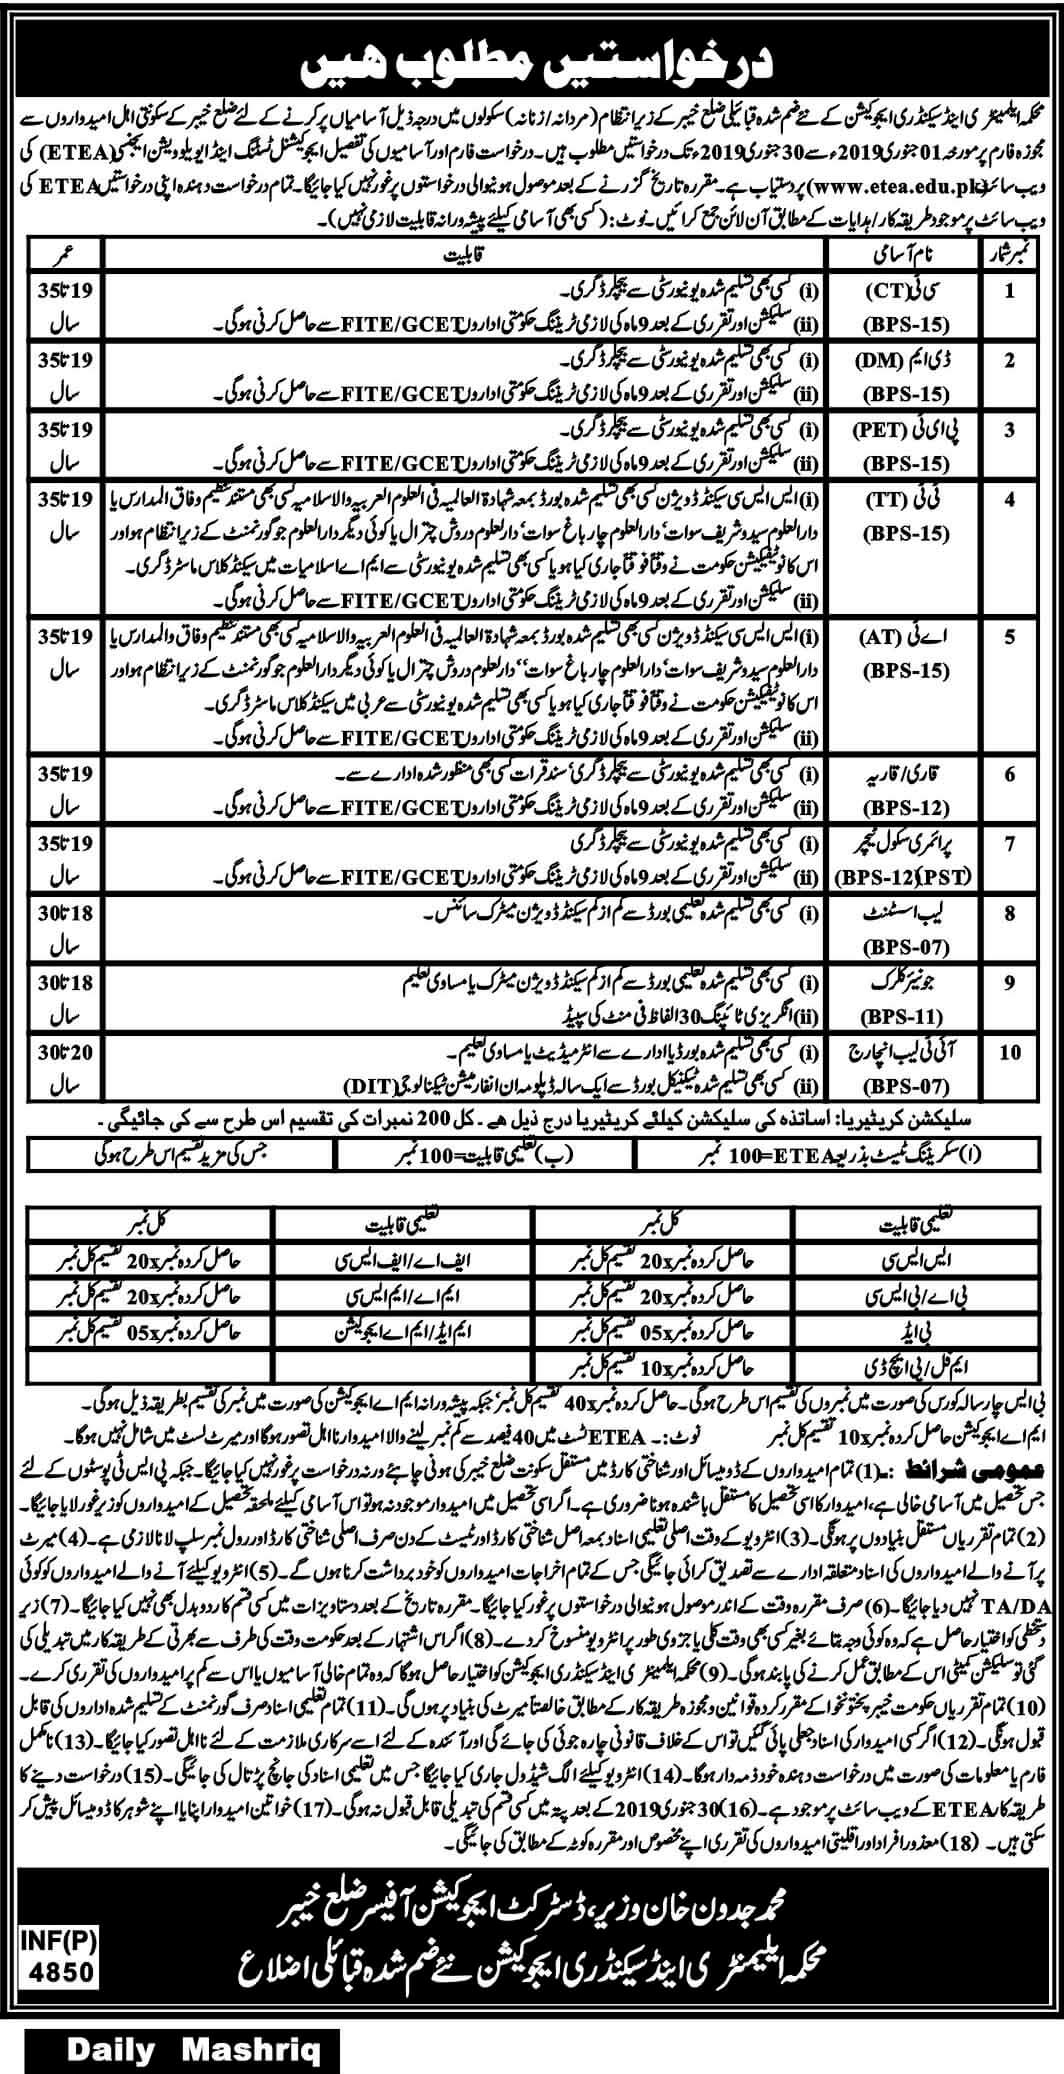 Elementary And Secondary Education Department Jobs 2019 District Khyber KPK in KPK on December, 2018 | Government